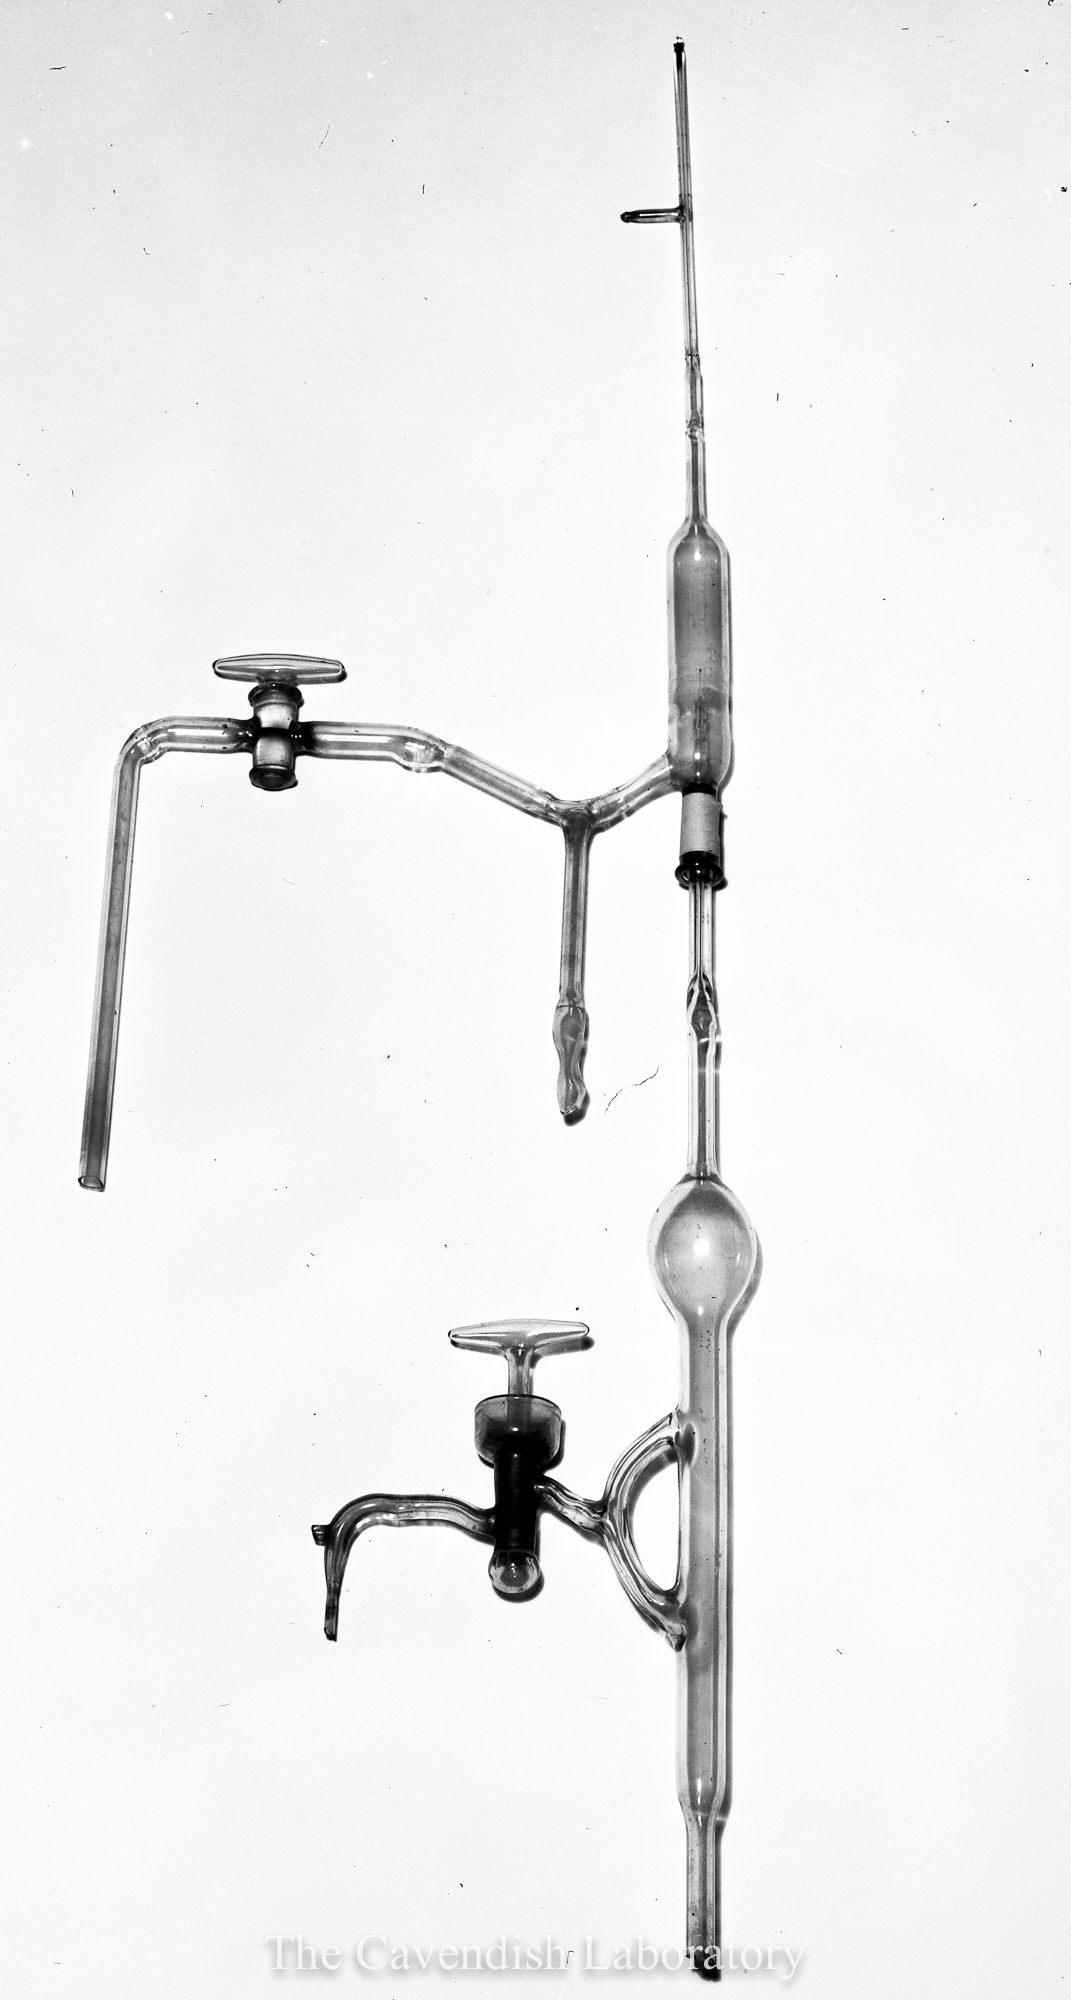 Otto Baumbach's apparatus which identified alpha-particles with helium nuclei (1909) (Image from PH-CAVENDISH-P-00037)